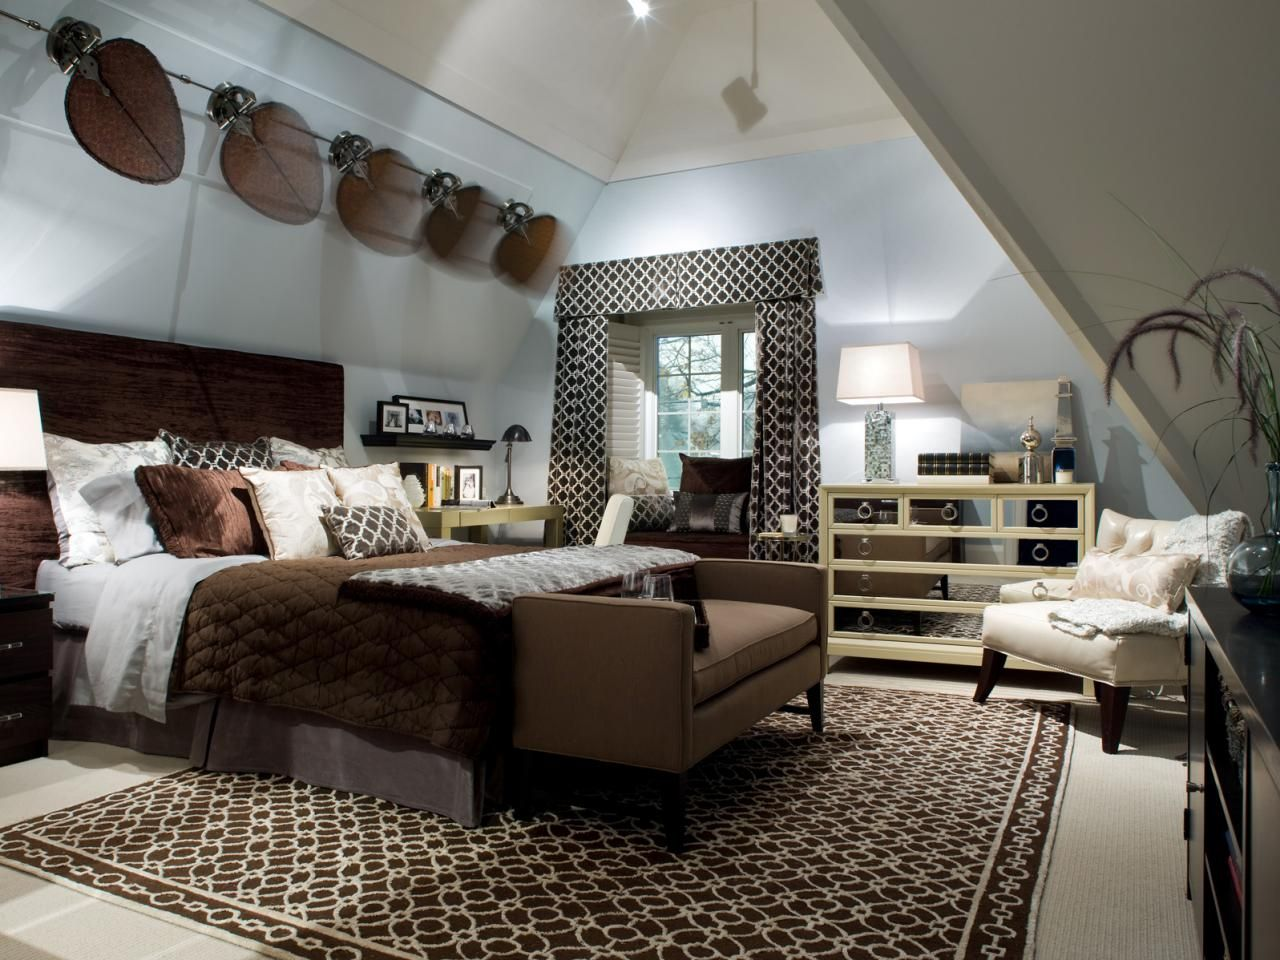 Candice Olson Bedroom Designs Beauteous 10 Bedroom Retreats From Candice Olson  Candice Olson Bedroom Design Decoration